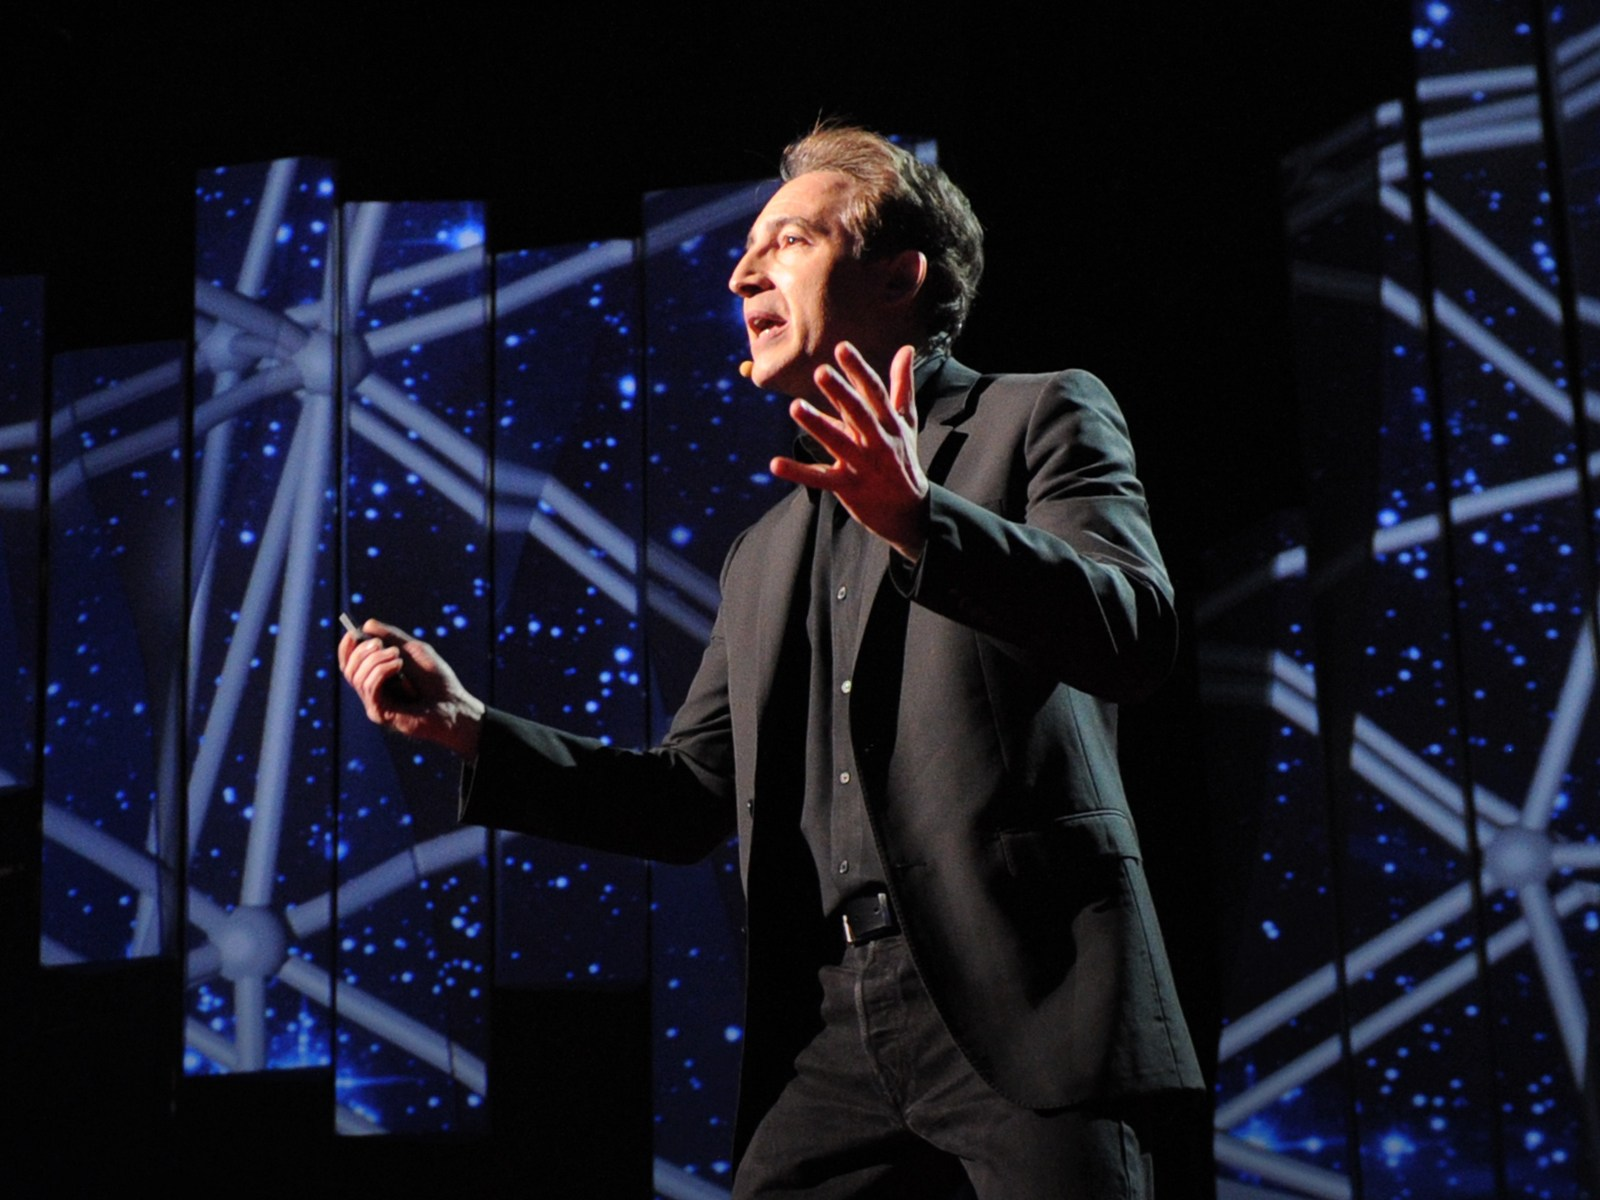 Brian Greene - Is Our Universe the Only Universe